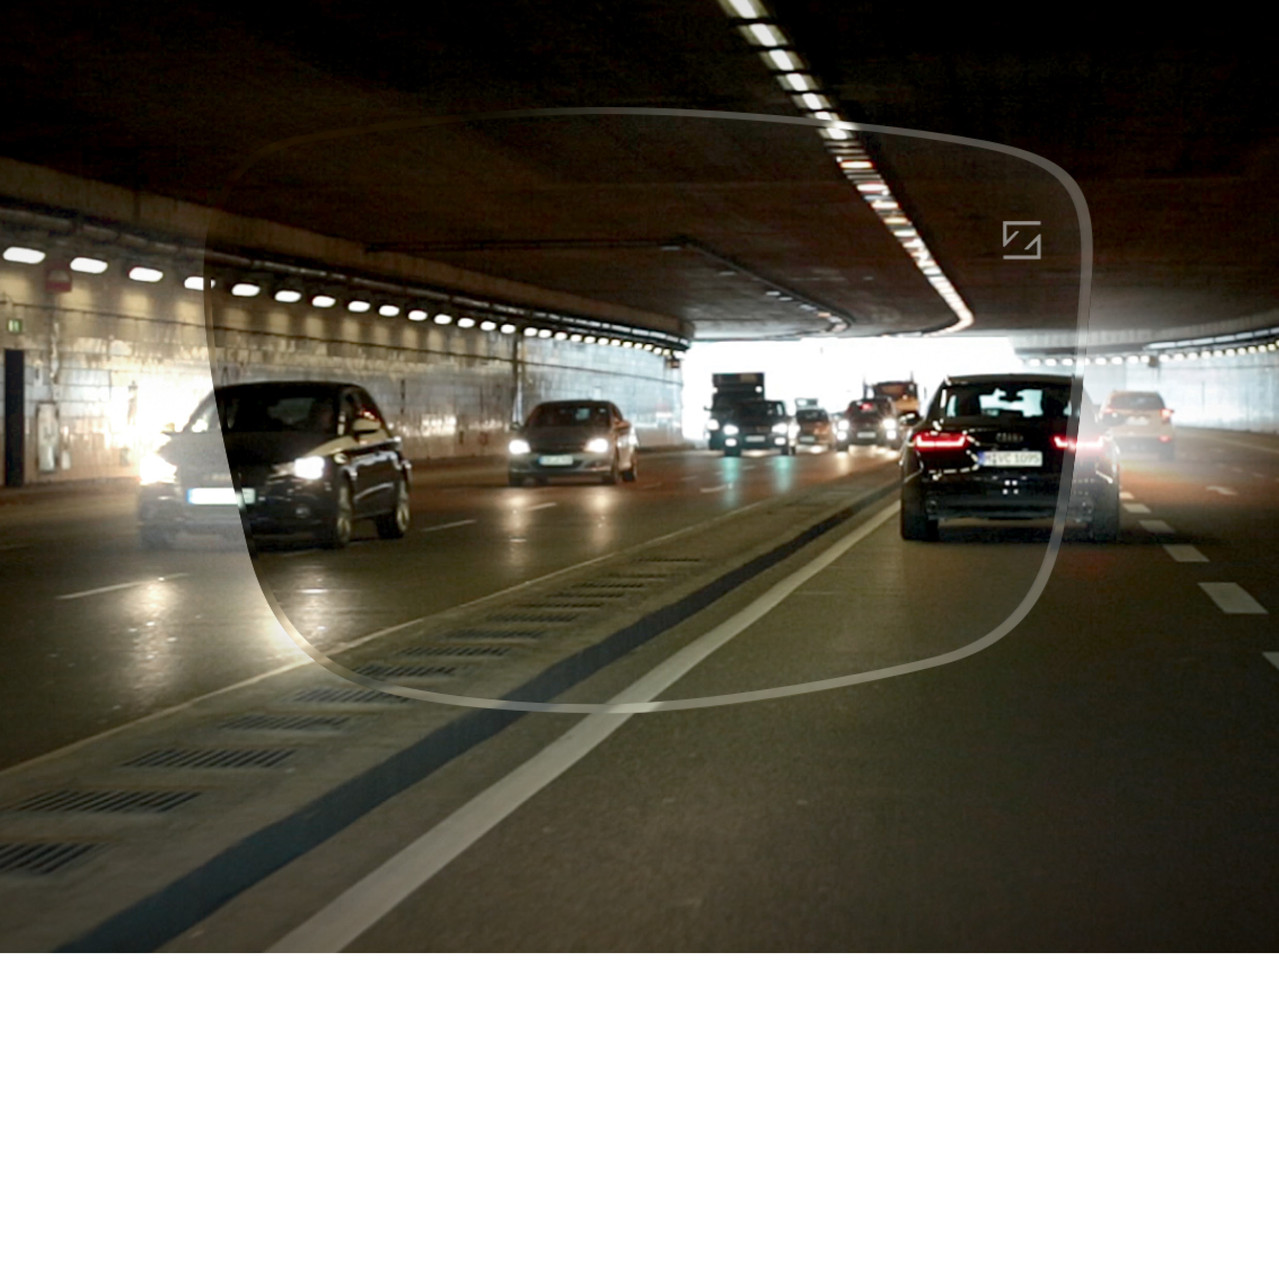 zeiss_drivesafe_lenses_visual_-_tunnel_p